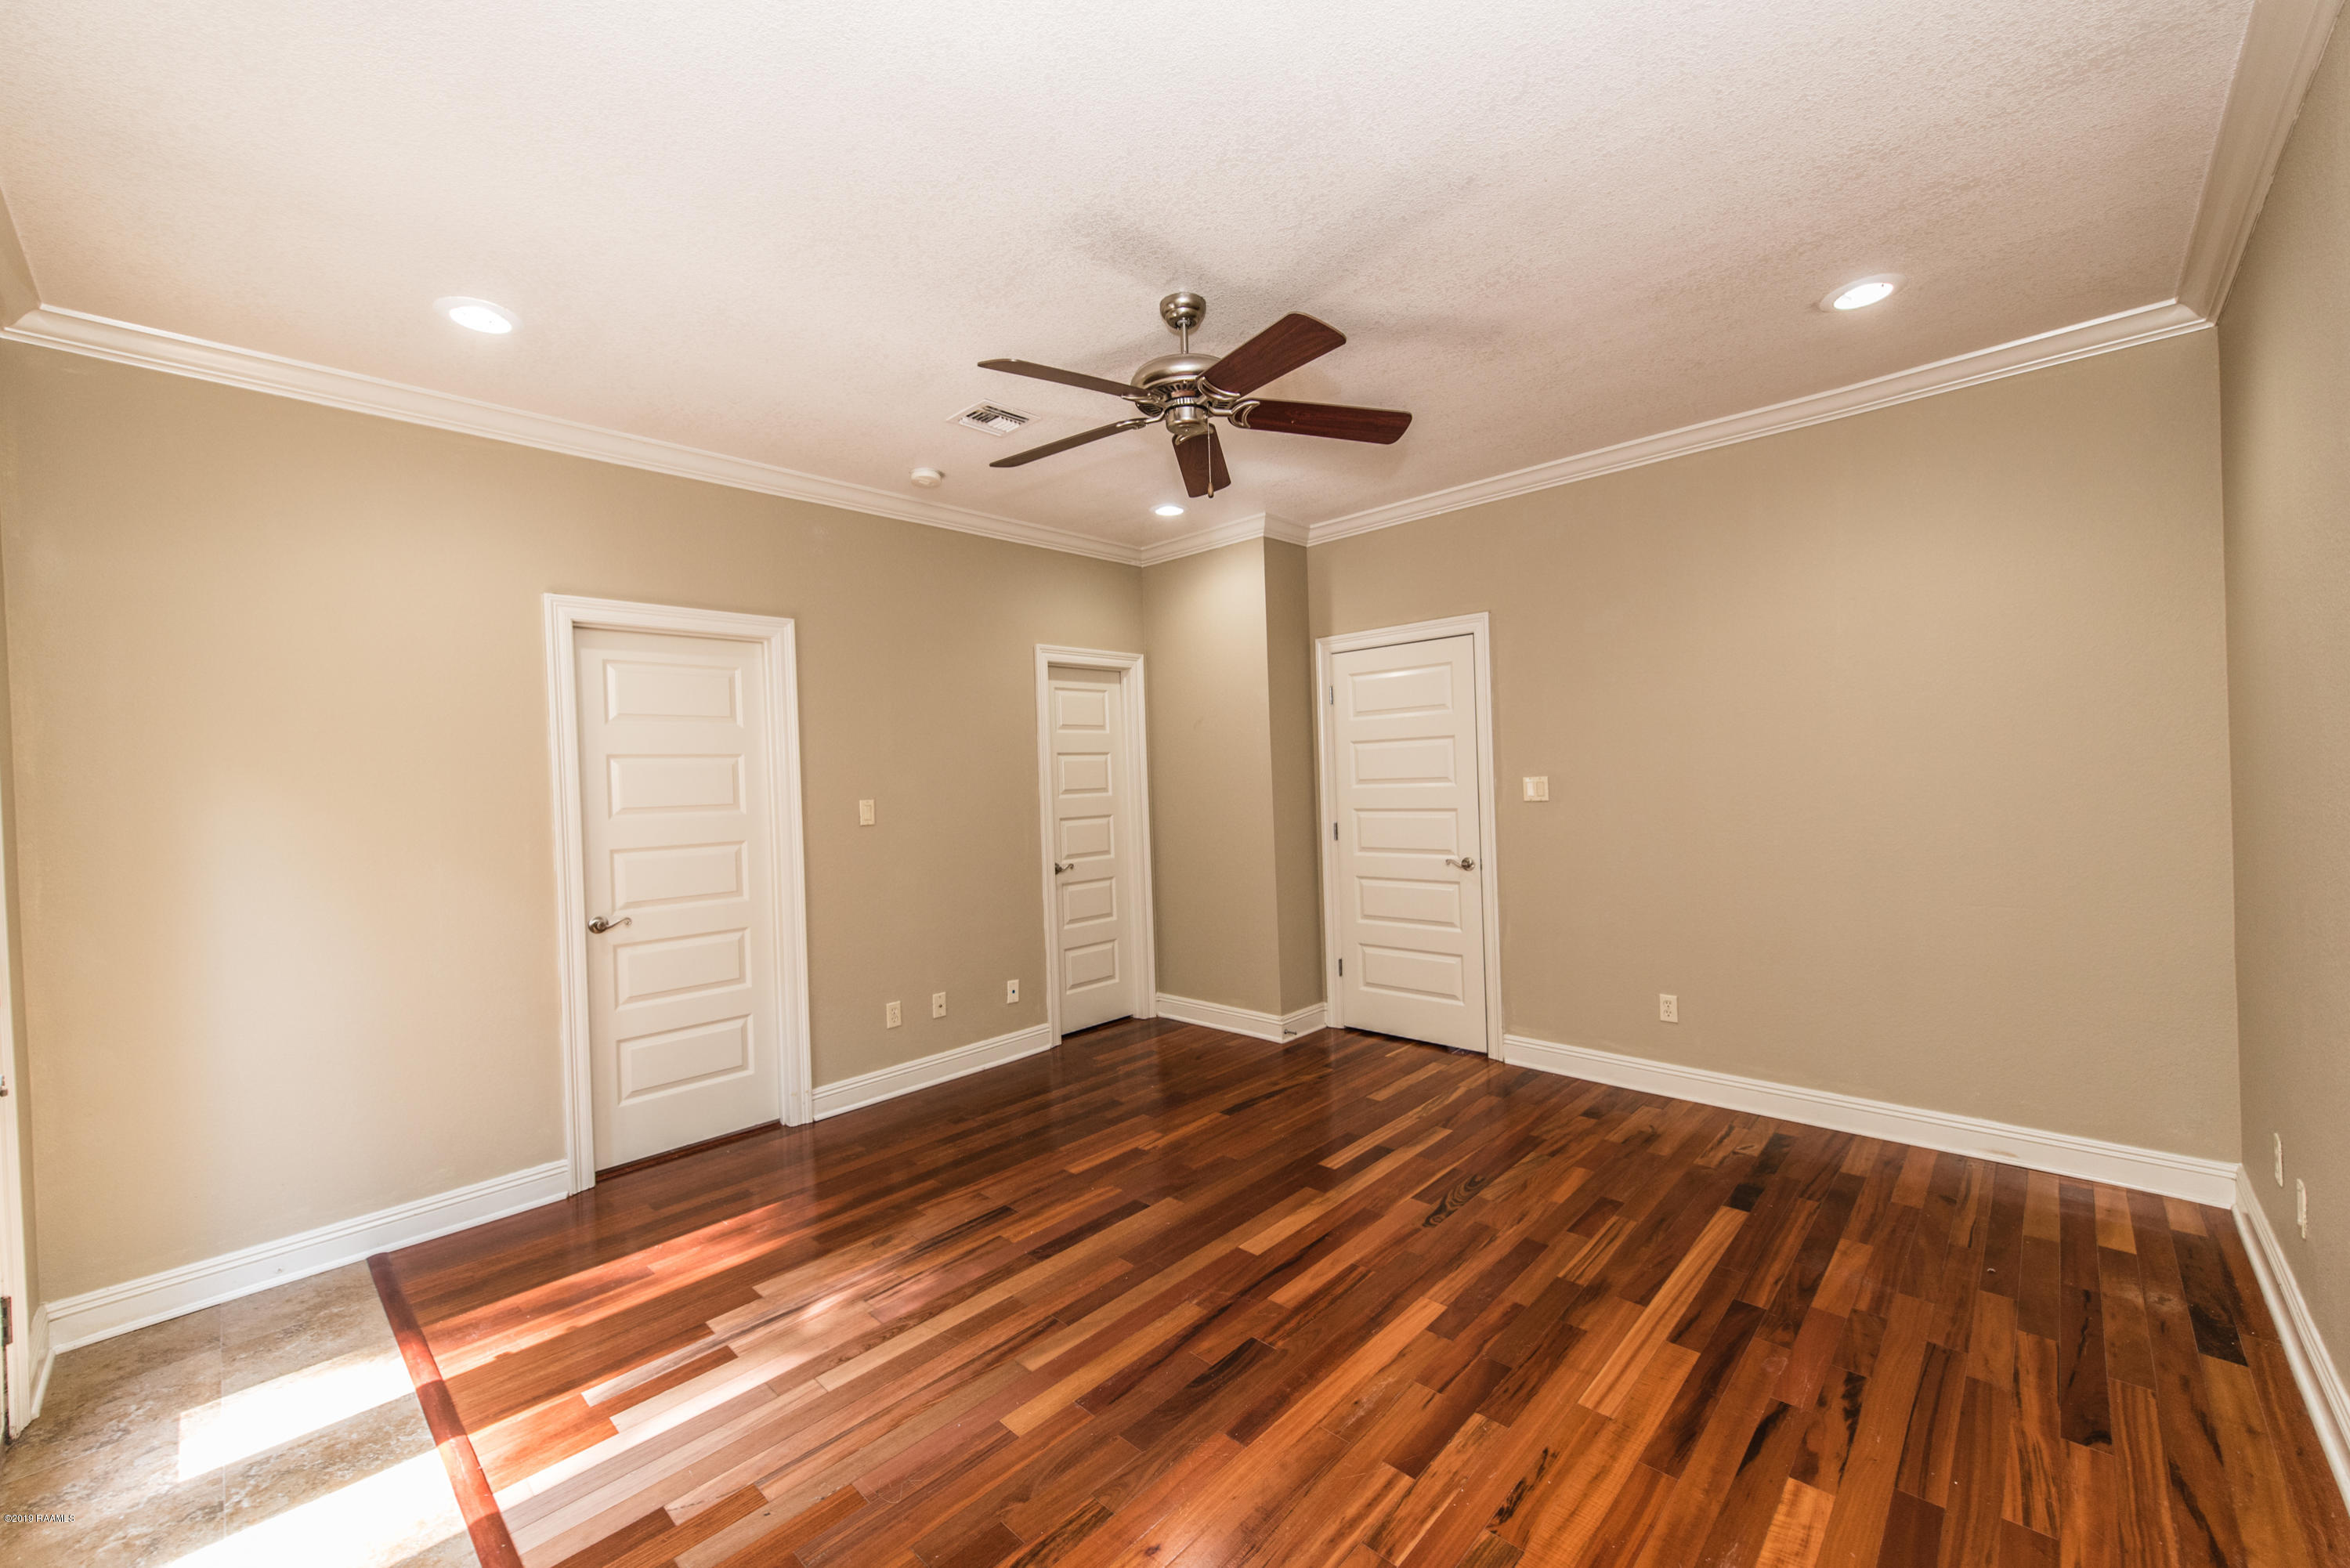 120 Ambiance Circle, Lafayette, LA 70508 Photo #8